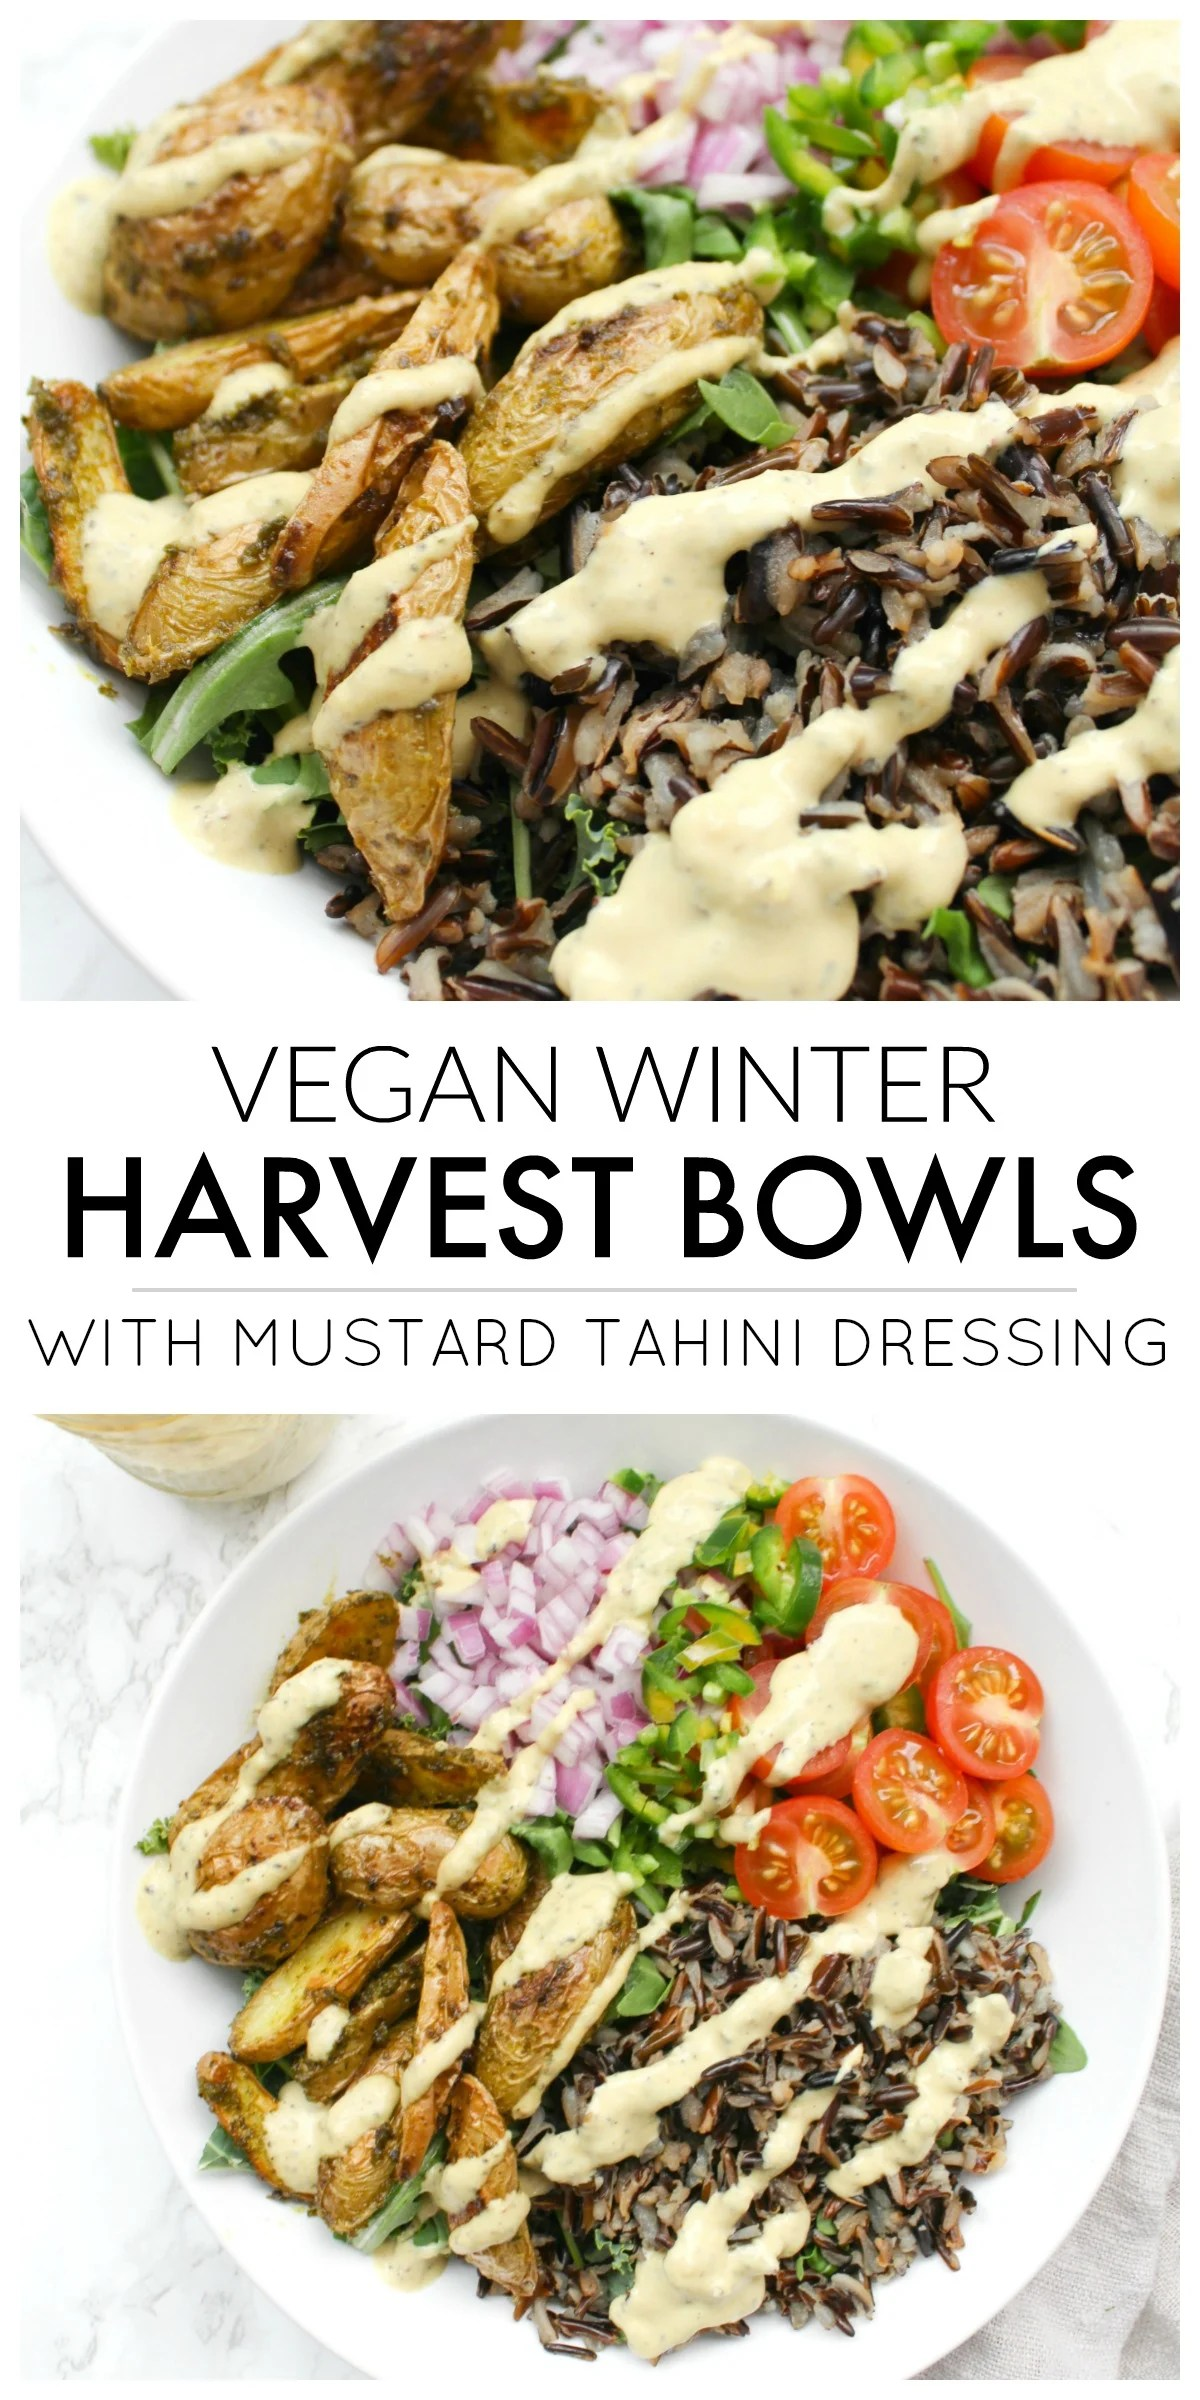 Both healthy and delicious, these Vegan Winter Harvest Bowls with Mustard Tahini Dressing are perfect for meal prepping | ThisSavoryVegan.com #thissavoryvegan #mealprep